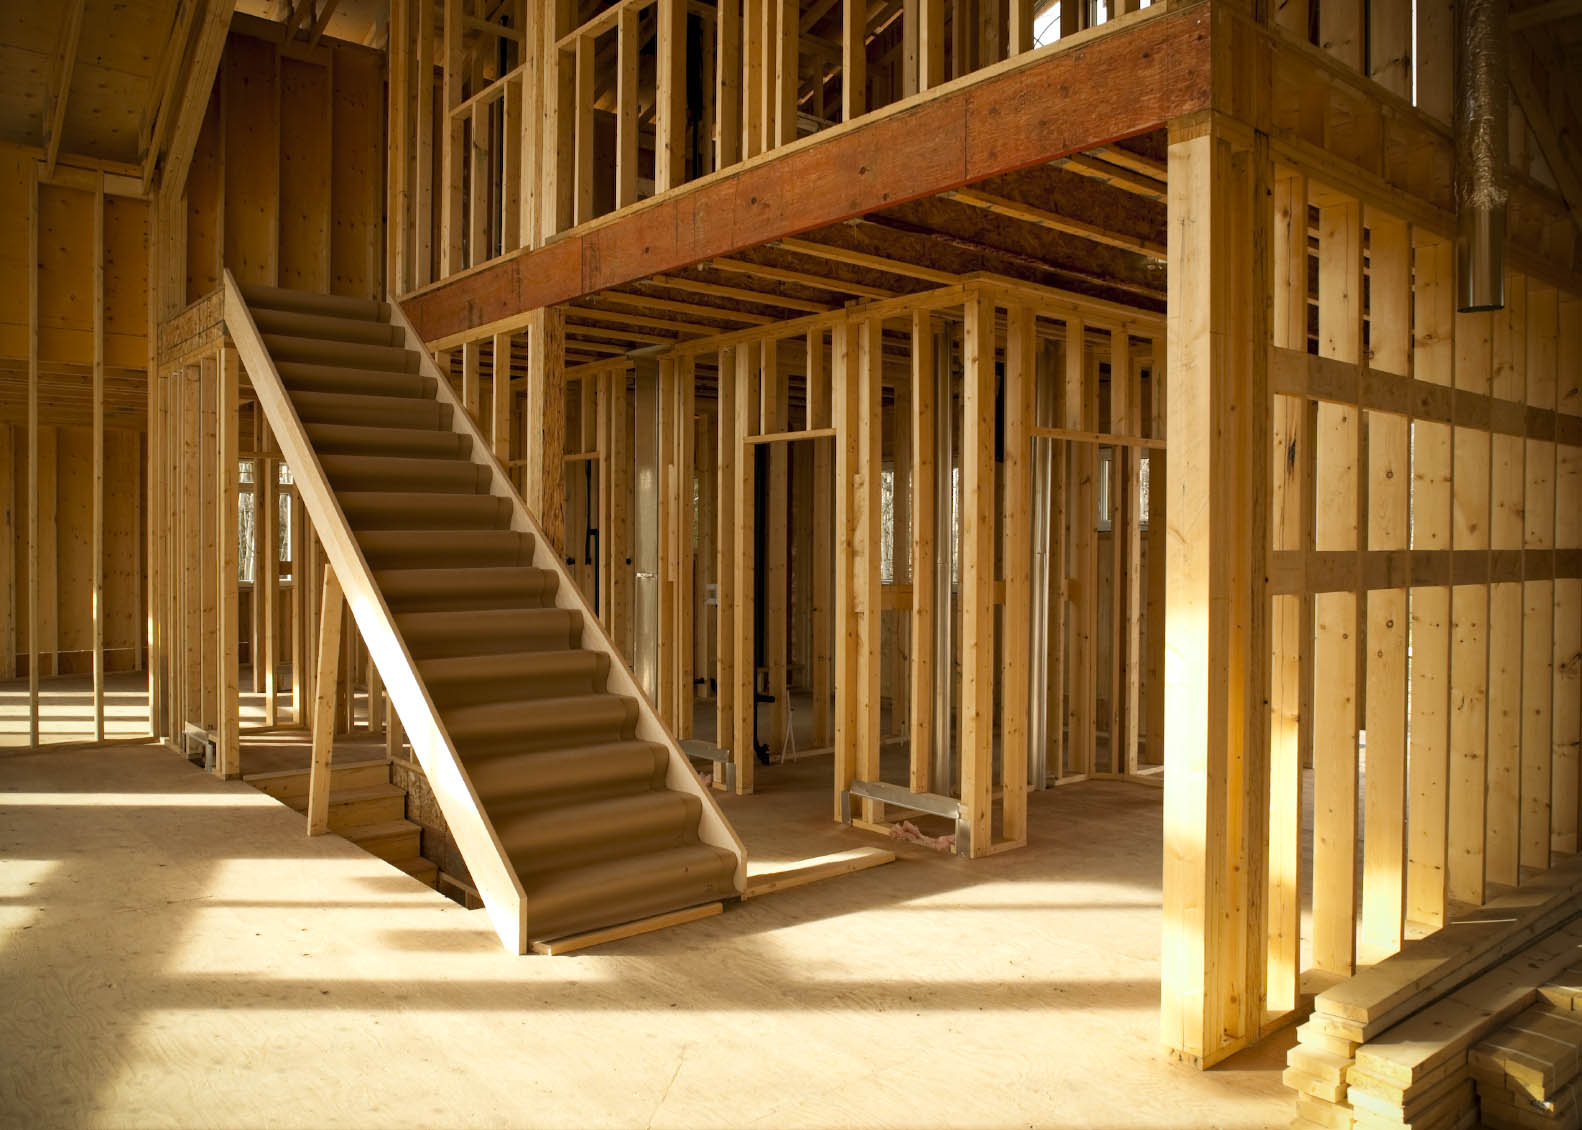 interior of house under construction wood framing studs